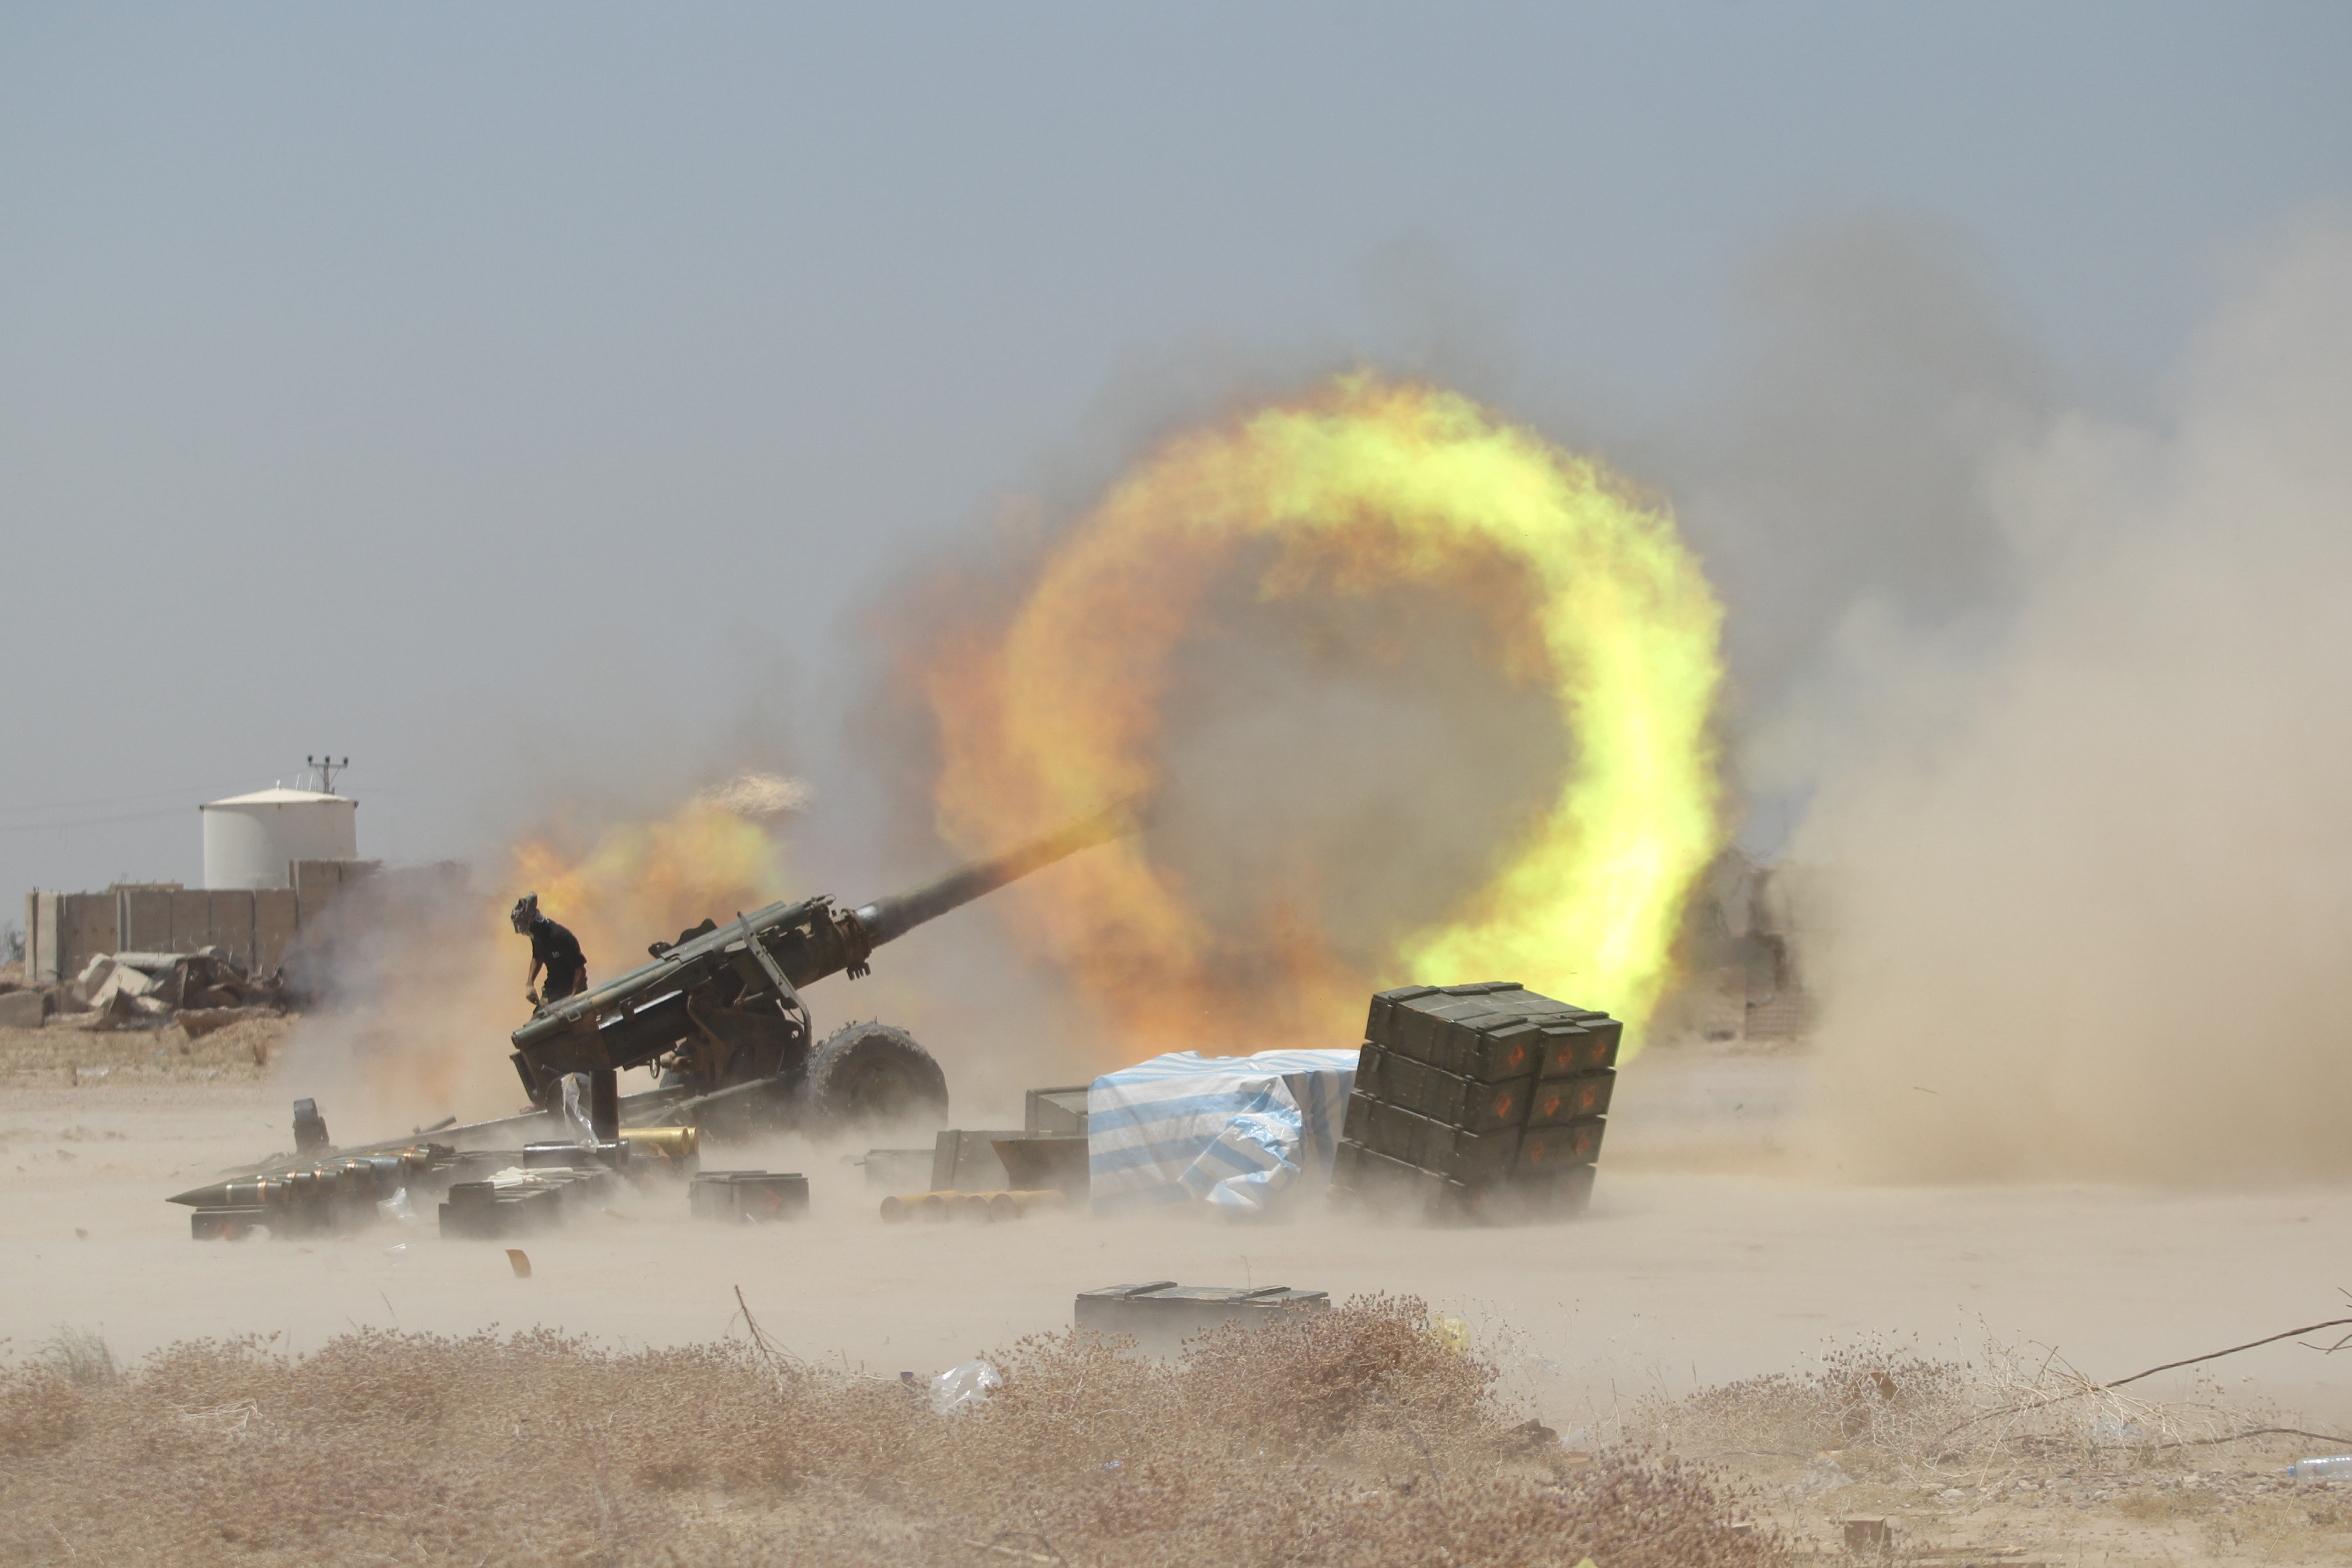 An Iraqi Shi'ite fighter fires artillery during clashes with Islamic State militants near Falluja, Iraq, May 29, 2016. To match Special Report IRAQ-MASSACRES/FALLUJA REUTERS/Staff/File Photo TO MATCH SPECIAL REPORT XXX TPX IMAGES OF THE DAY